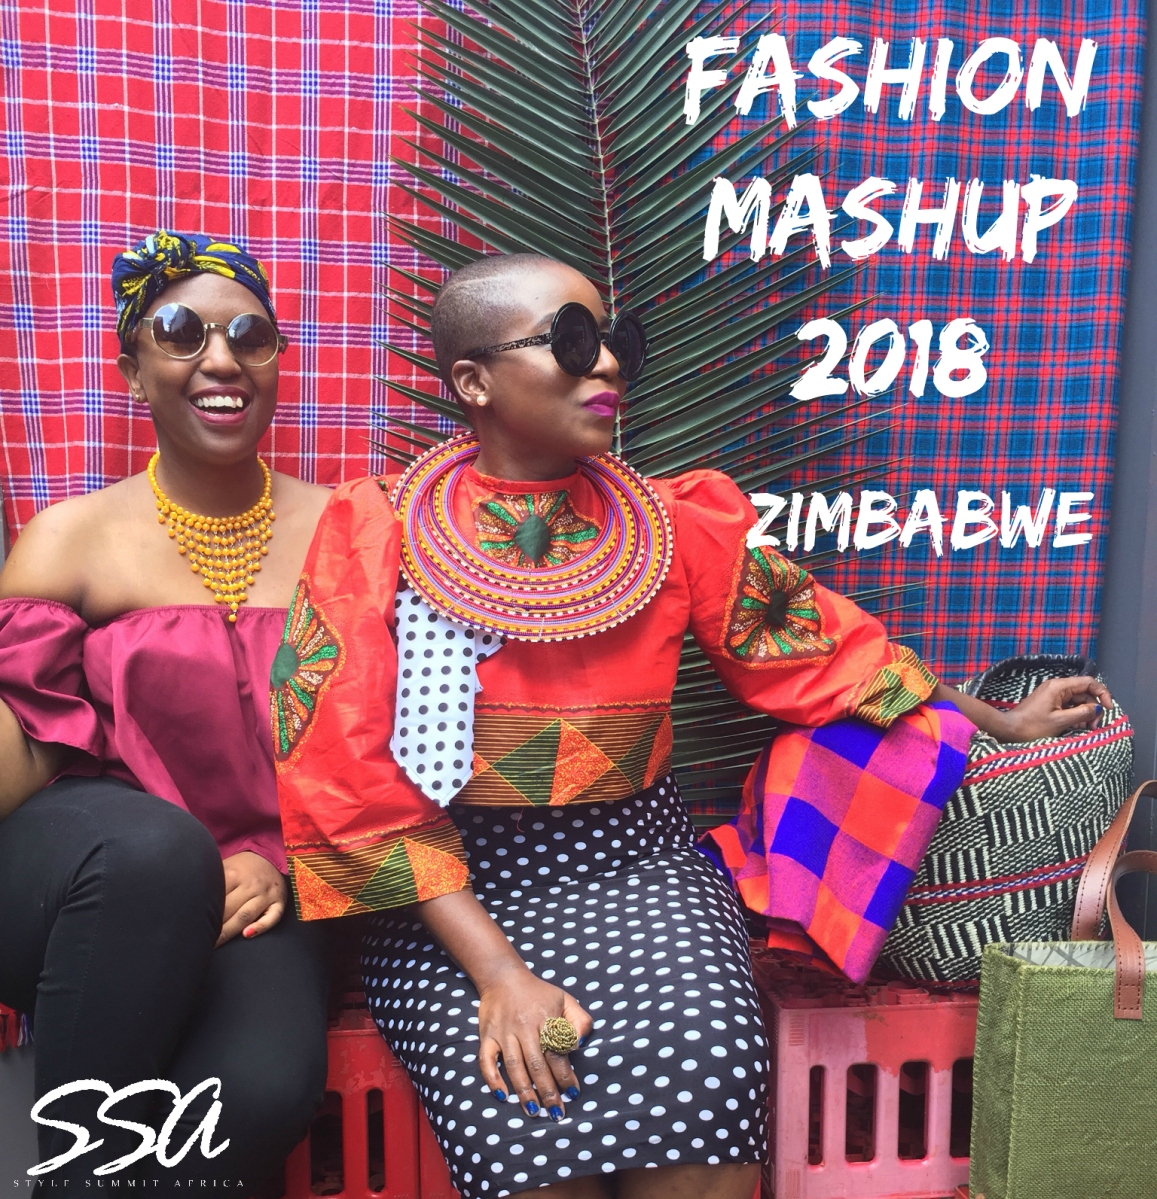 Fashion Mashup Zimbabwe